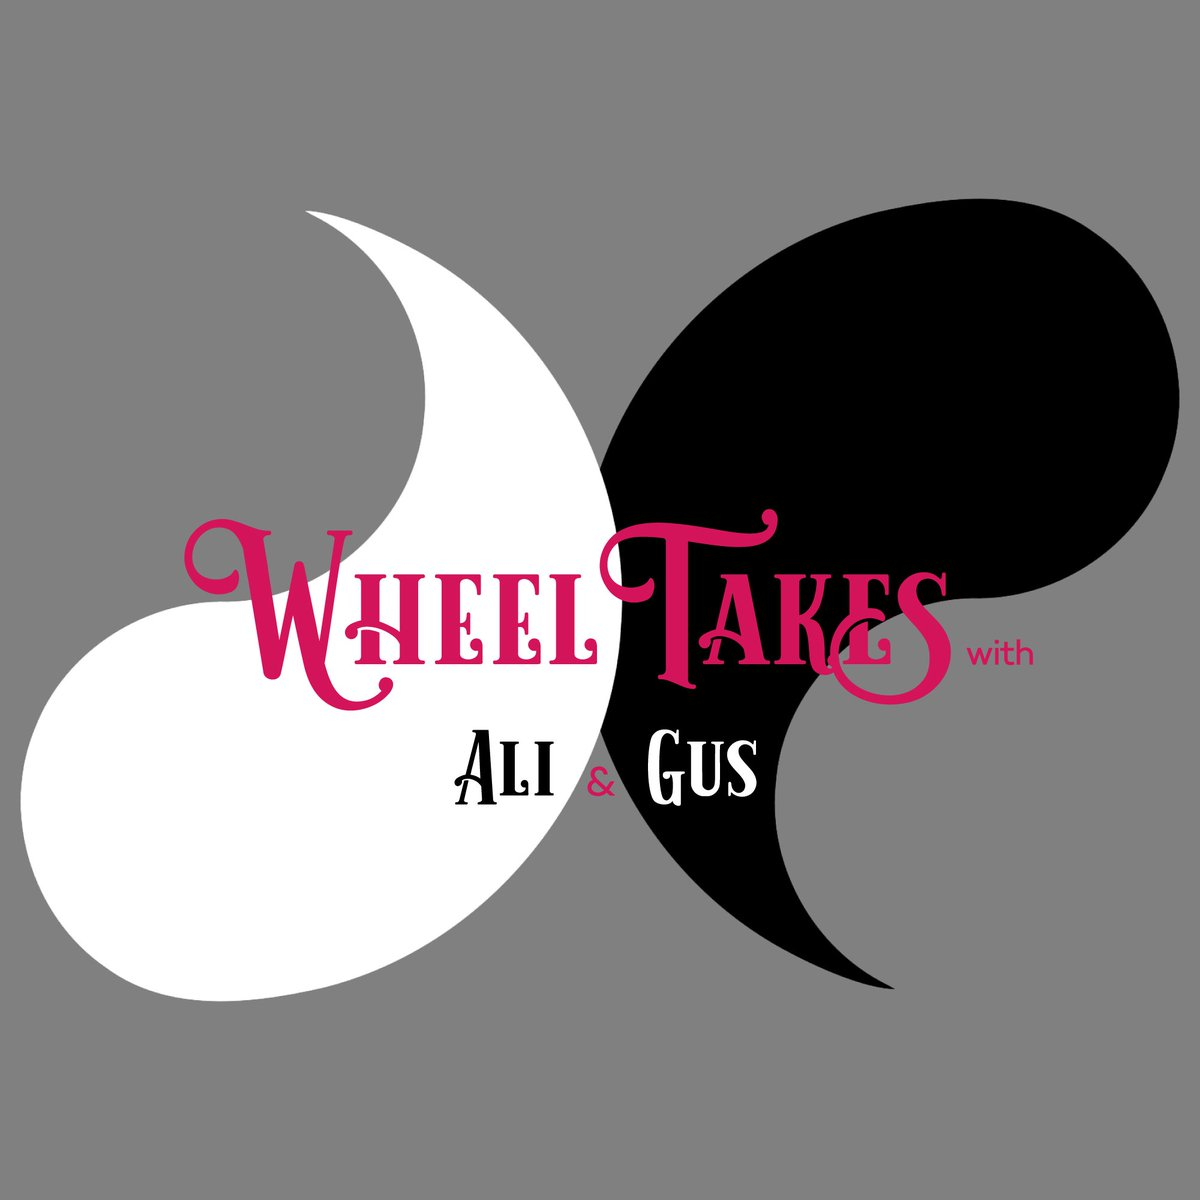 Check out our INCREDIBLE #NewProfilePic from @collinquinnrice! Just in time to celebrate today's NEW EPISODE! #podcast #twitteroftime #wot #wheeloftime #darkprophecy (@TheDailyTrolloc gets a special shout-out!)<br>http://pic.twitter.com/3n6S3U1JV3